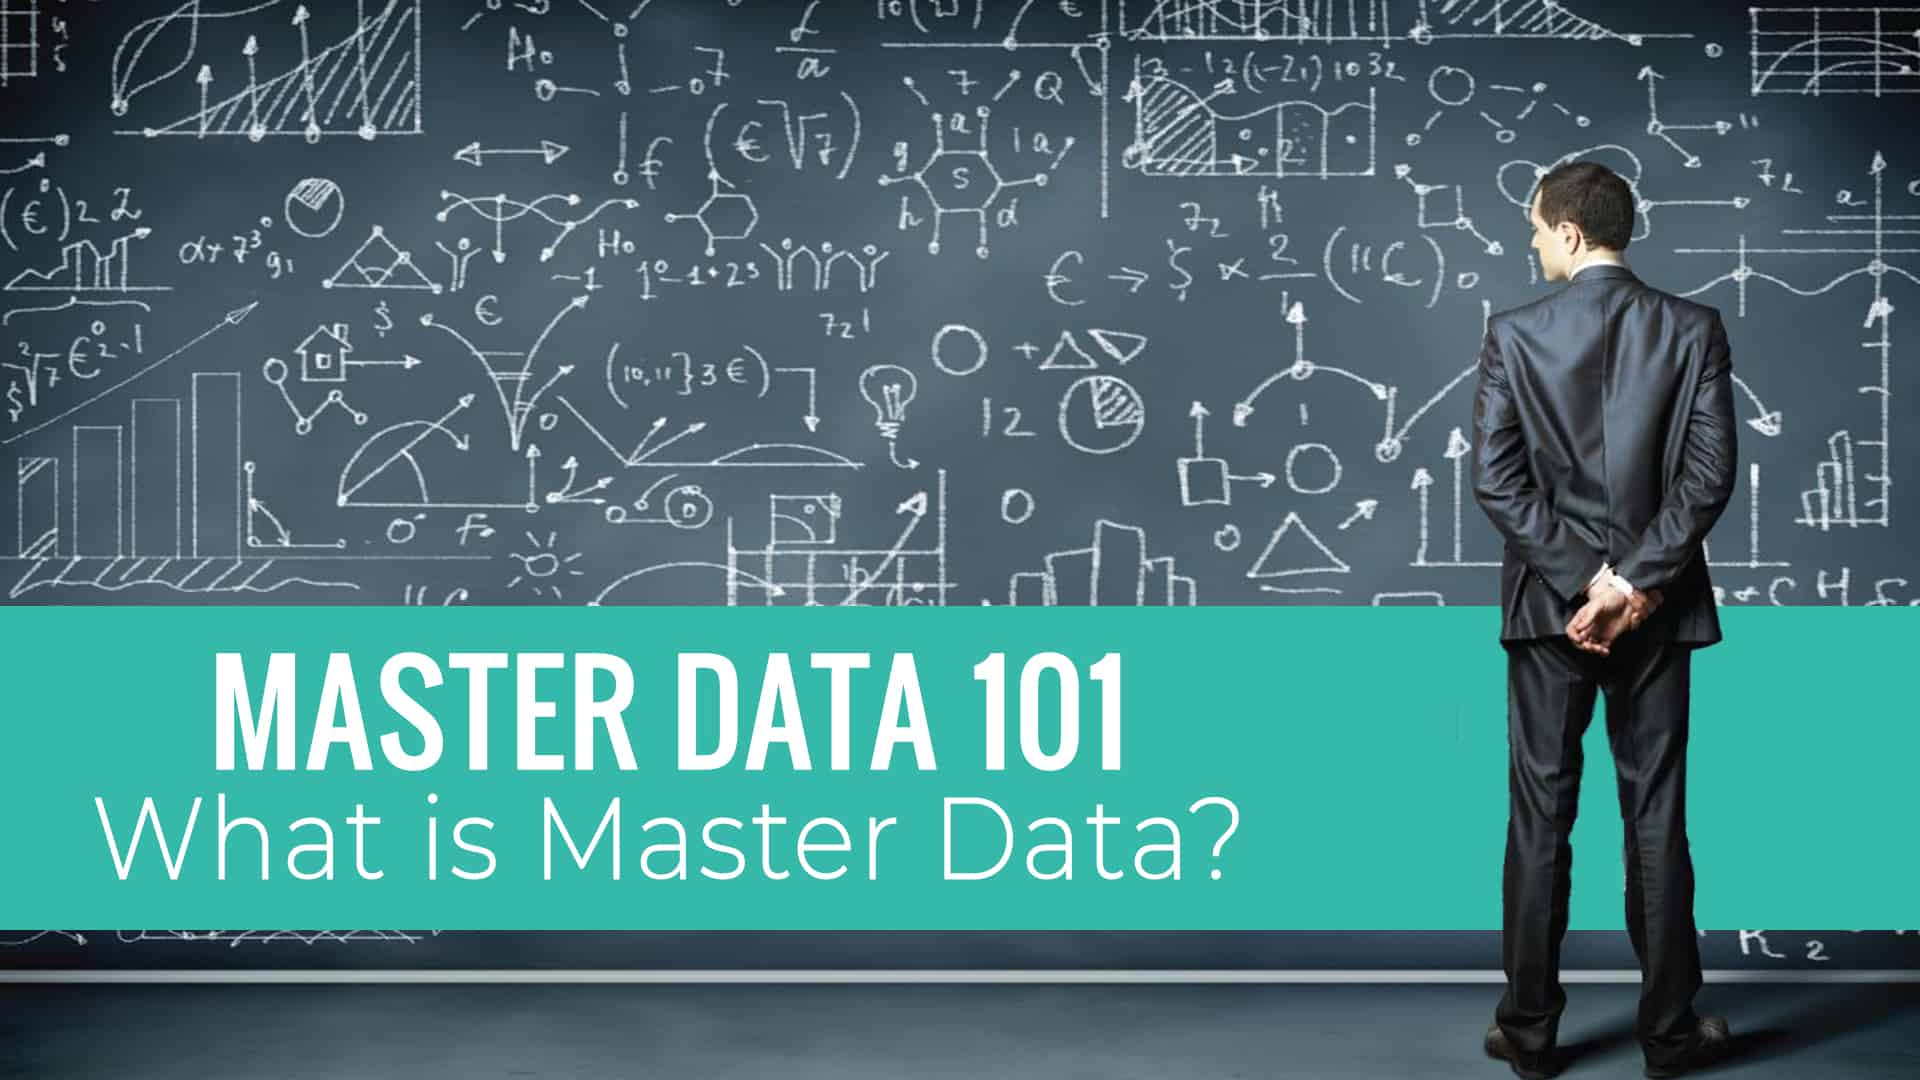 MDM 101 - What Is Master Data